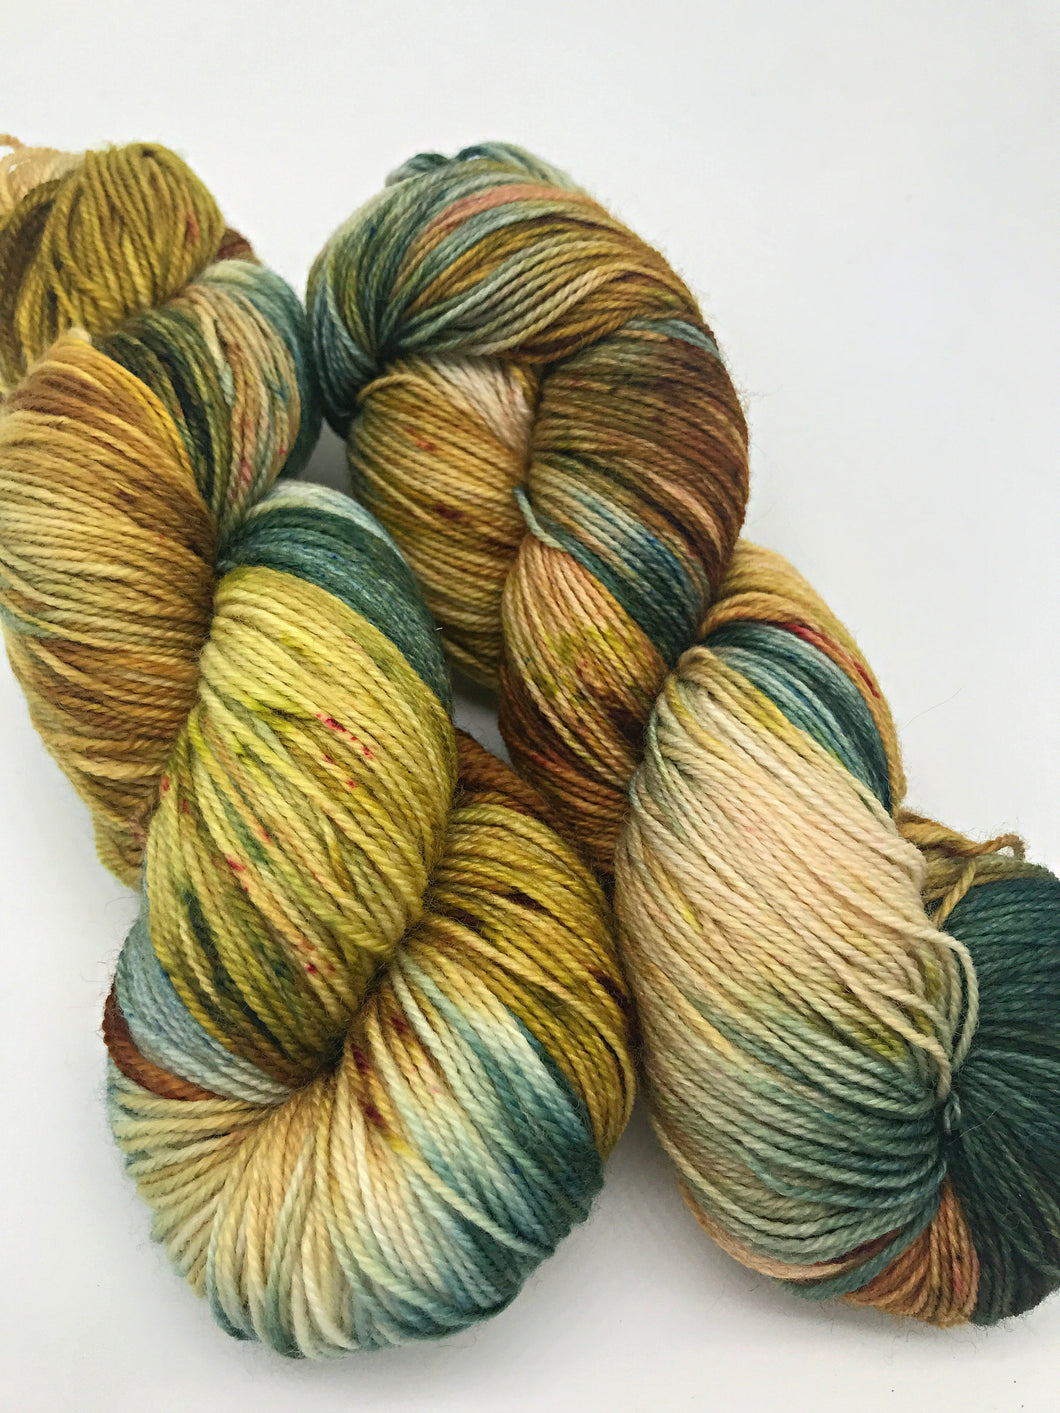 Mossy Knoll- Hand Dyed Fingering - 3 PLY - 80/20 SW Merino/ Nylon in blue, brown, yellow/green and sage for knitting and Crochet